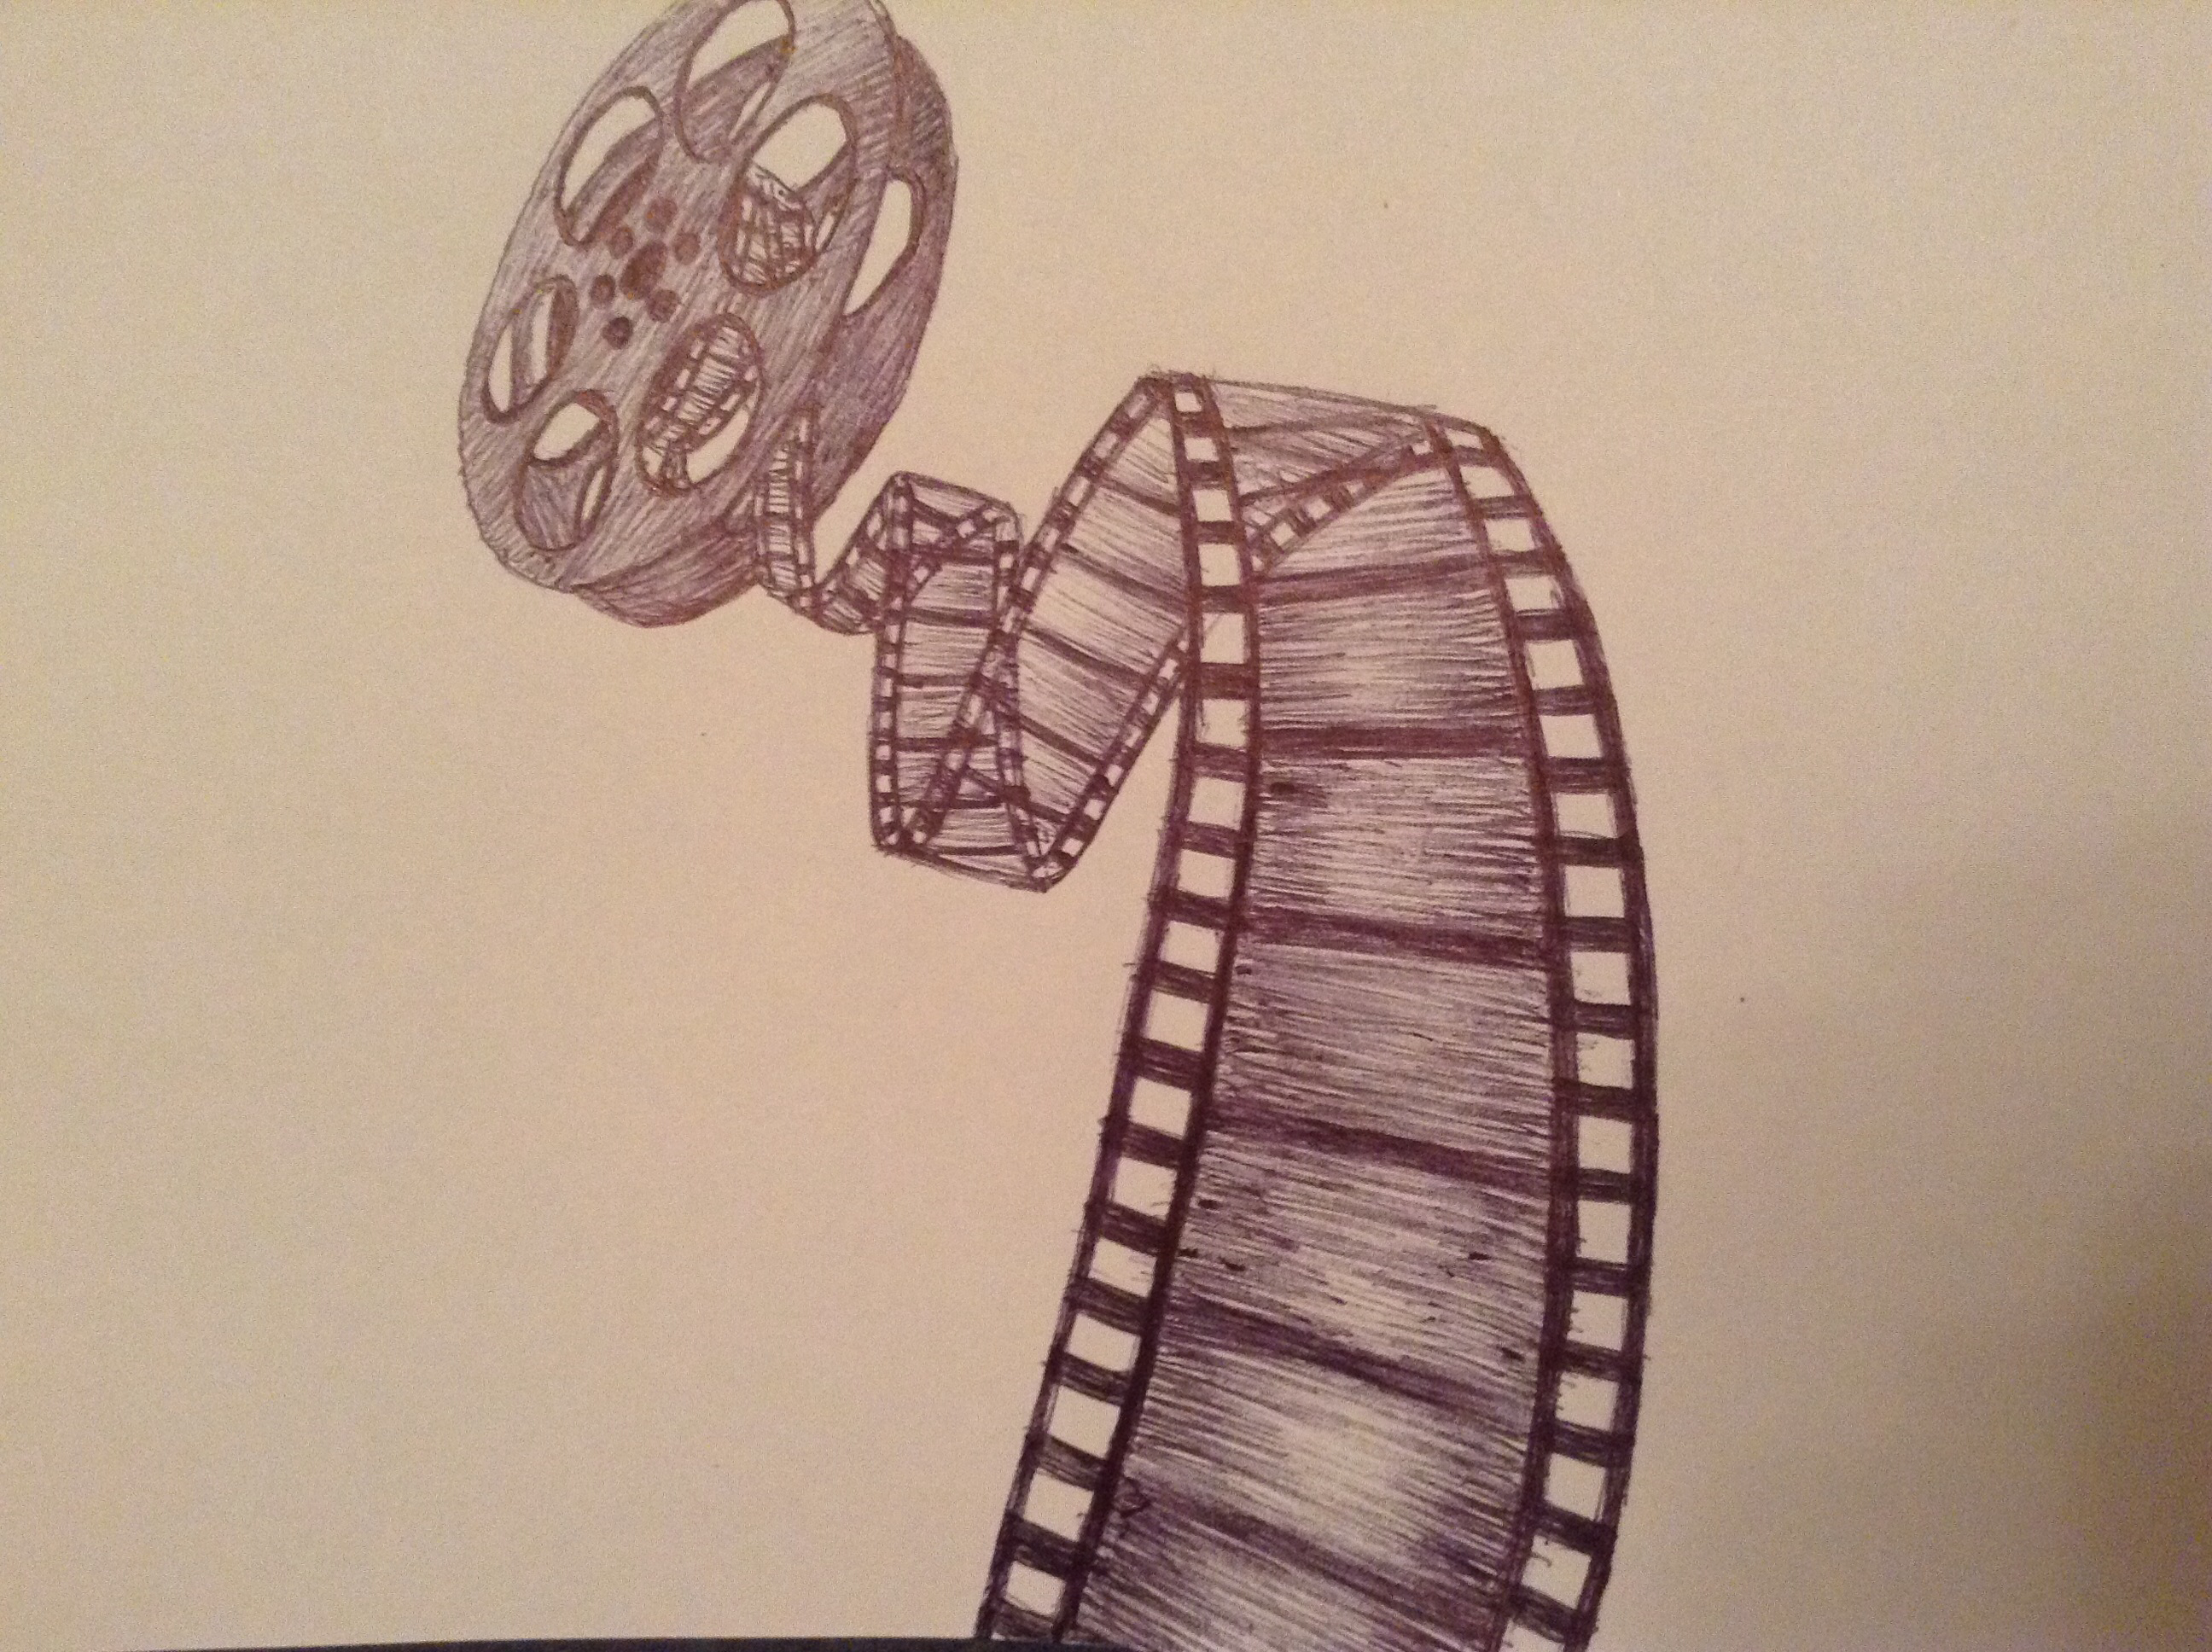 2592x1936 Film Reel Drawingn @myignisrules This Has Your Name Written All